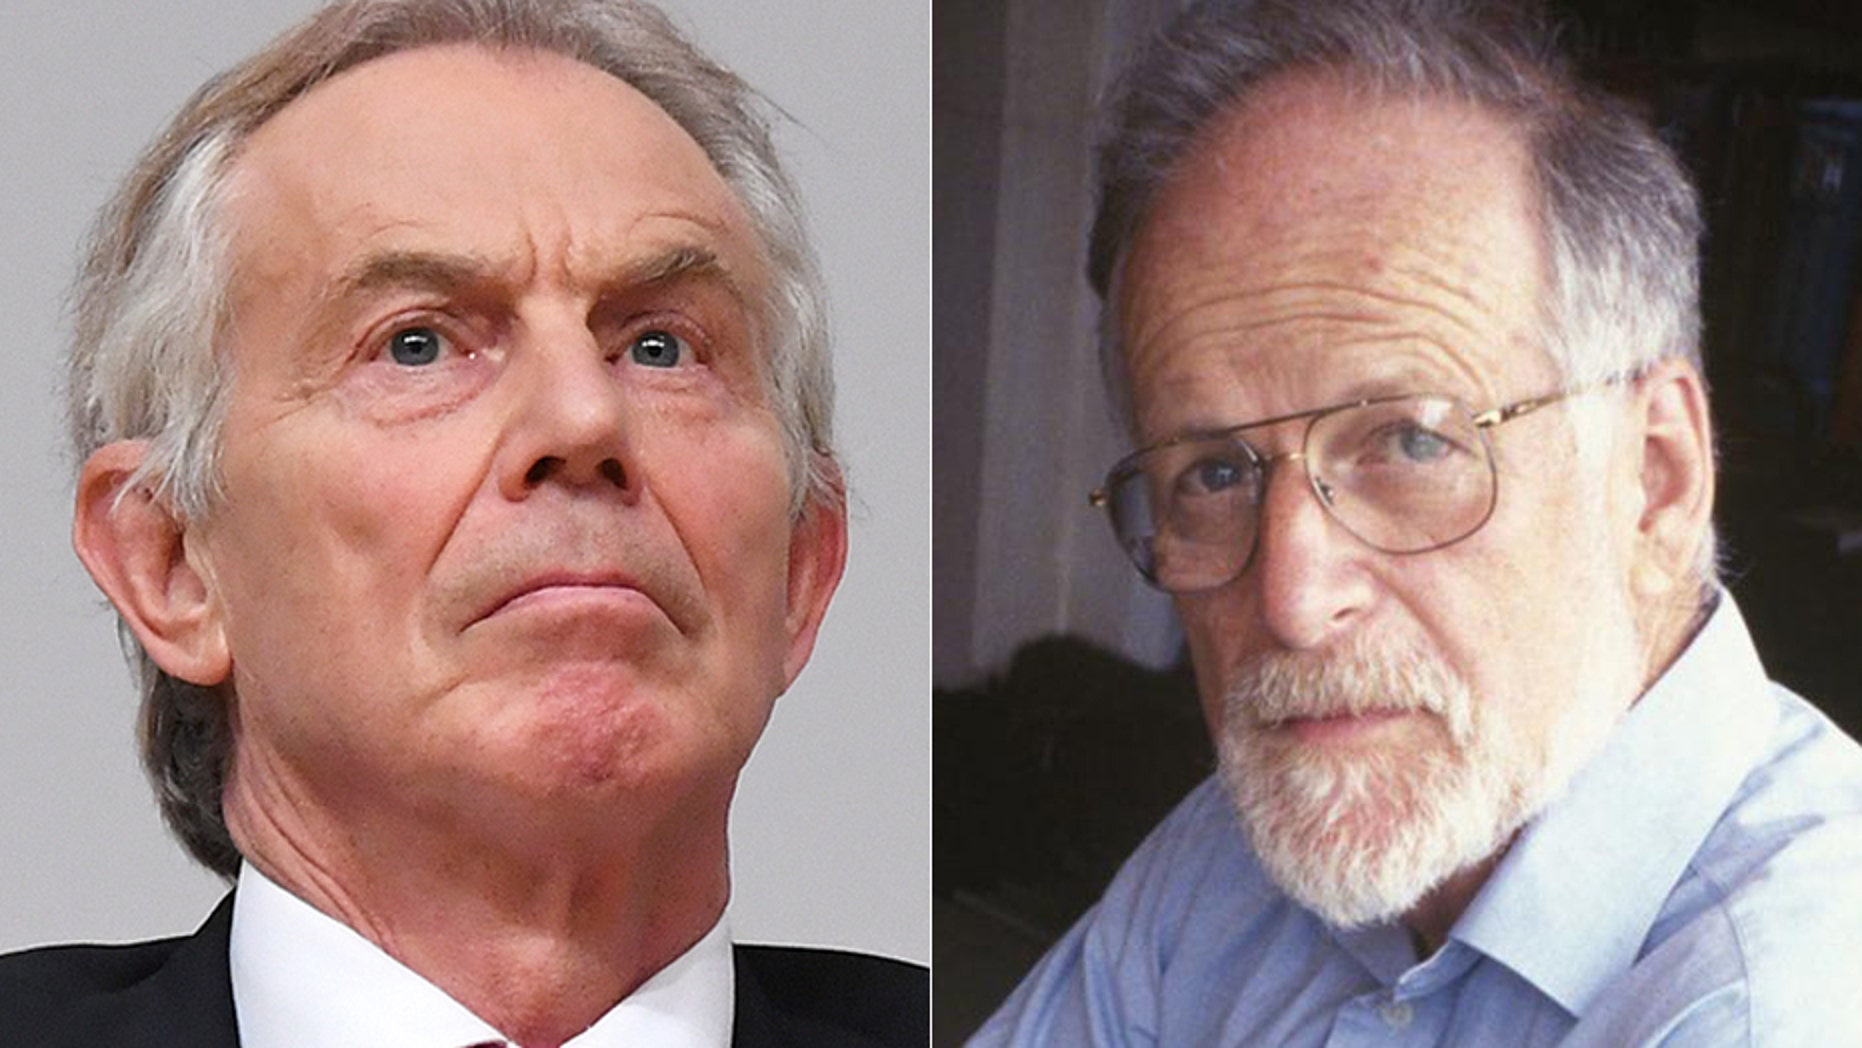 Author Miles Goslett told Fox News that his main objective is to push for an independent investigation into what really killed David Kelly, pictured here alongside former Primer Minister Tony Blair.